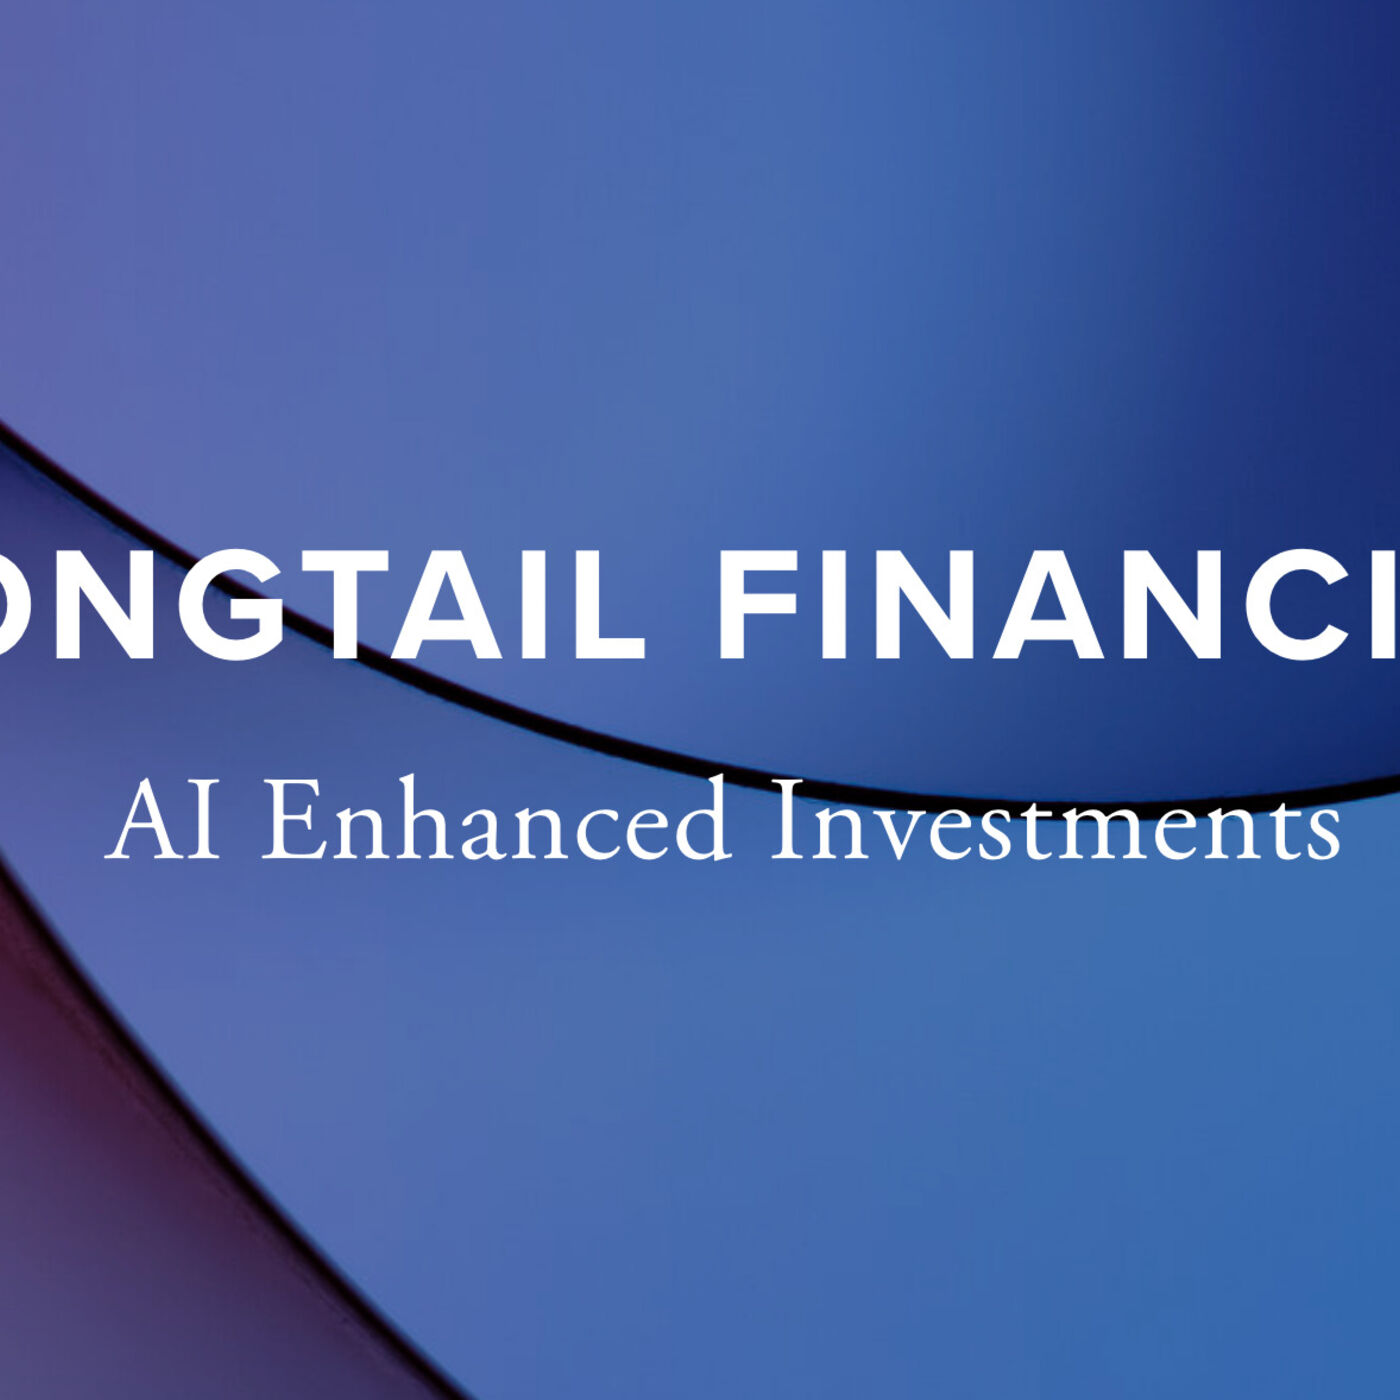 Decentralized Banking is Possible | Longtail Financial S04-EP16 | Kieran Macleod and Shawn Anderson